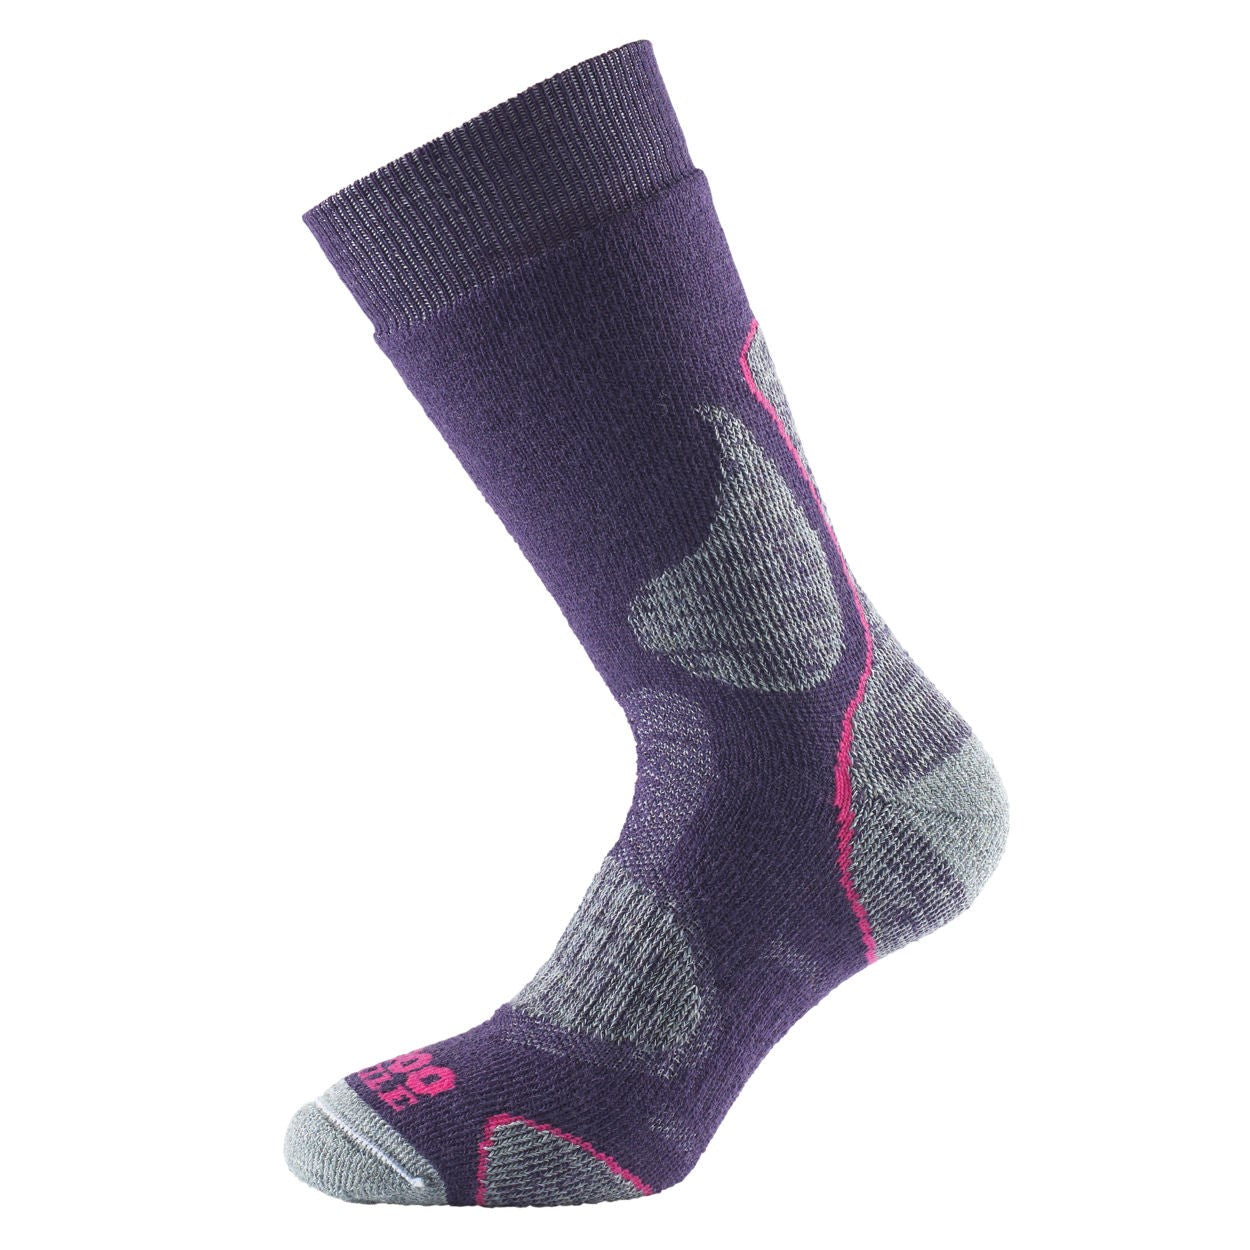 Women's 3 Season Single Layer Walk Sock